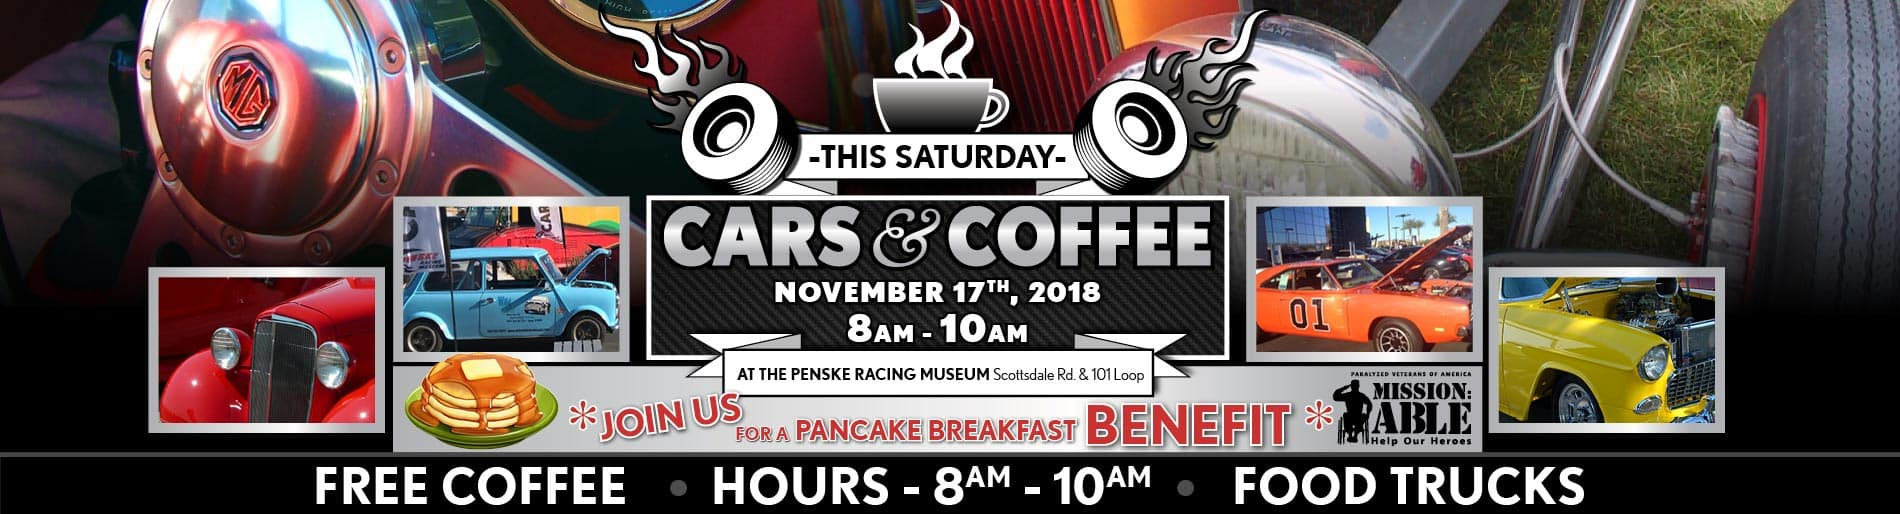 Cars andn Coffee